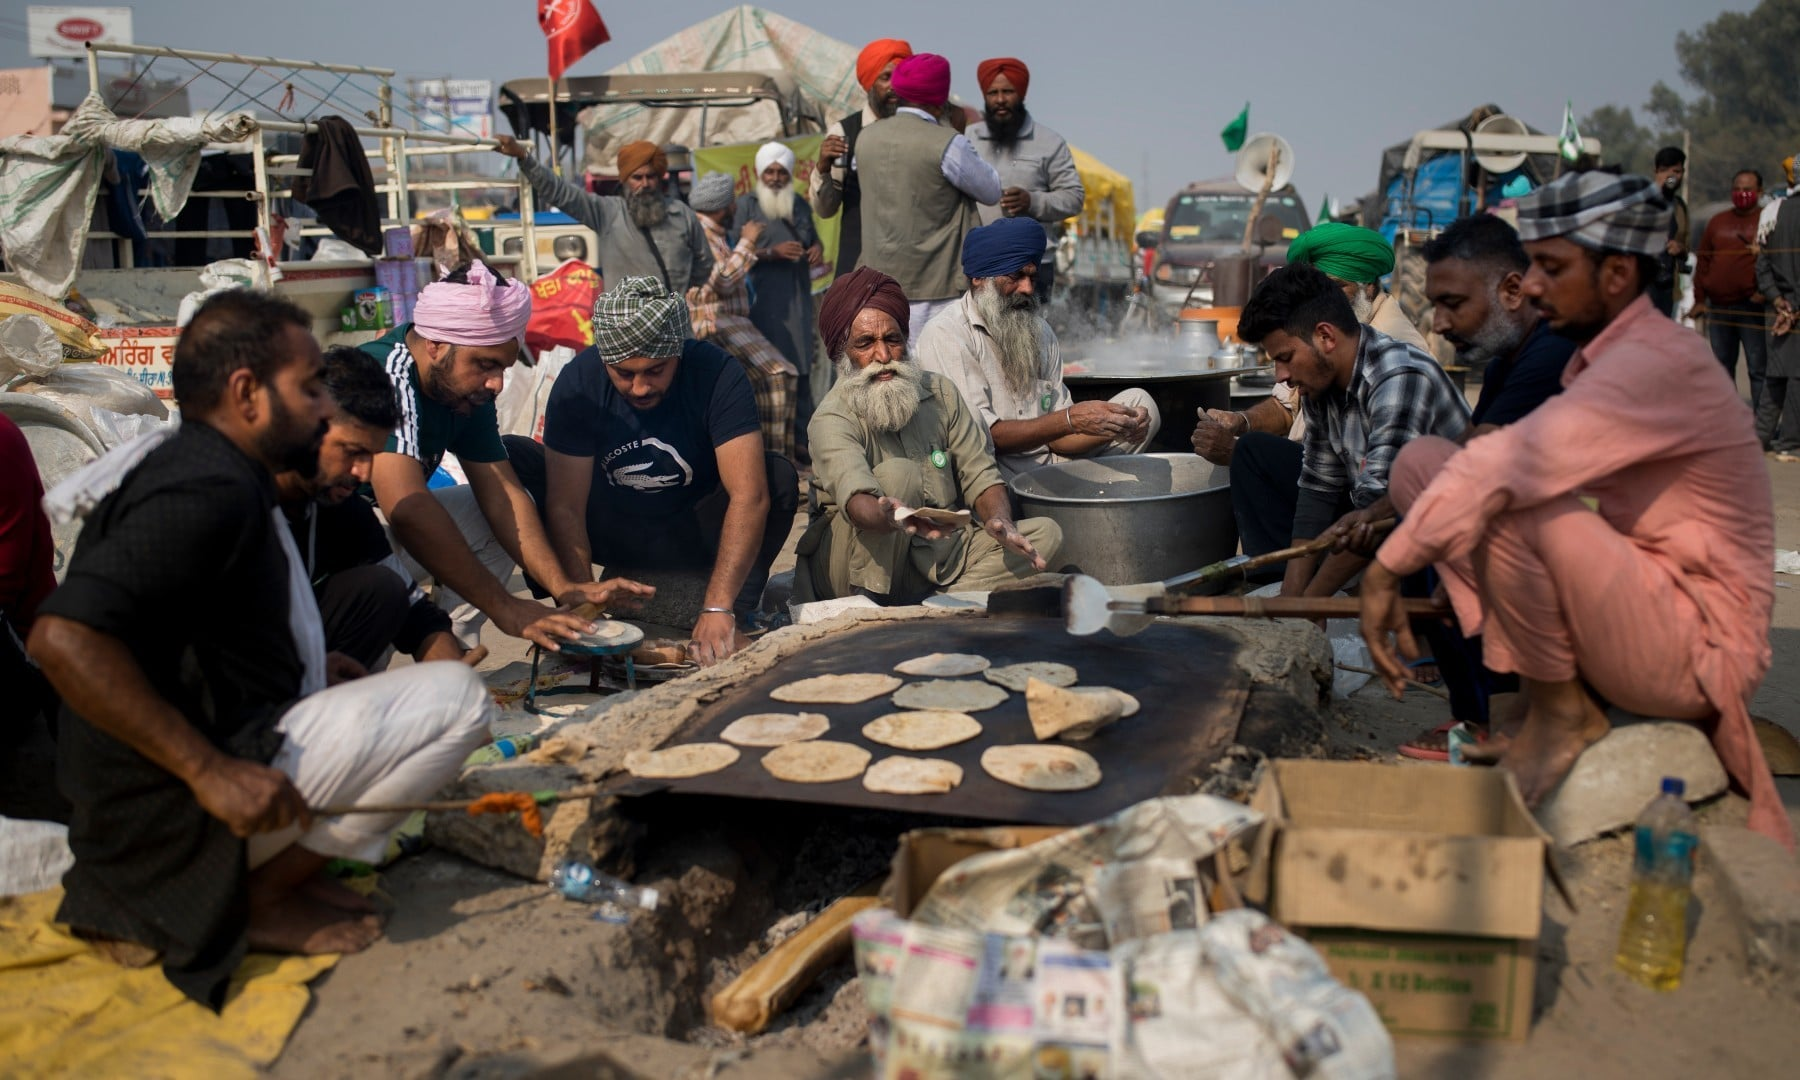 Protesting farmers prepare flat bread for fellow farmers as they block a major highway during a protest against new farming laws at the Delhi-Haryana state border on Dec 1. — AP